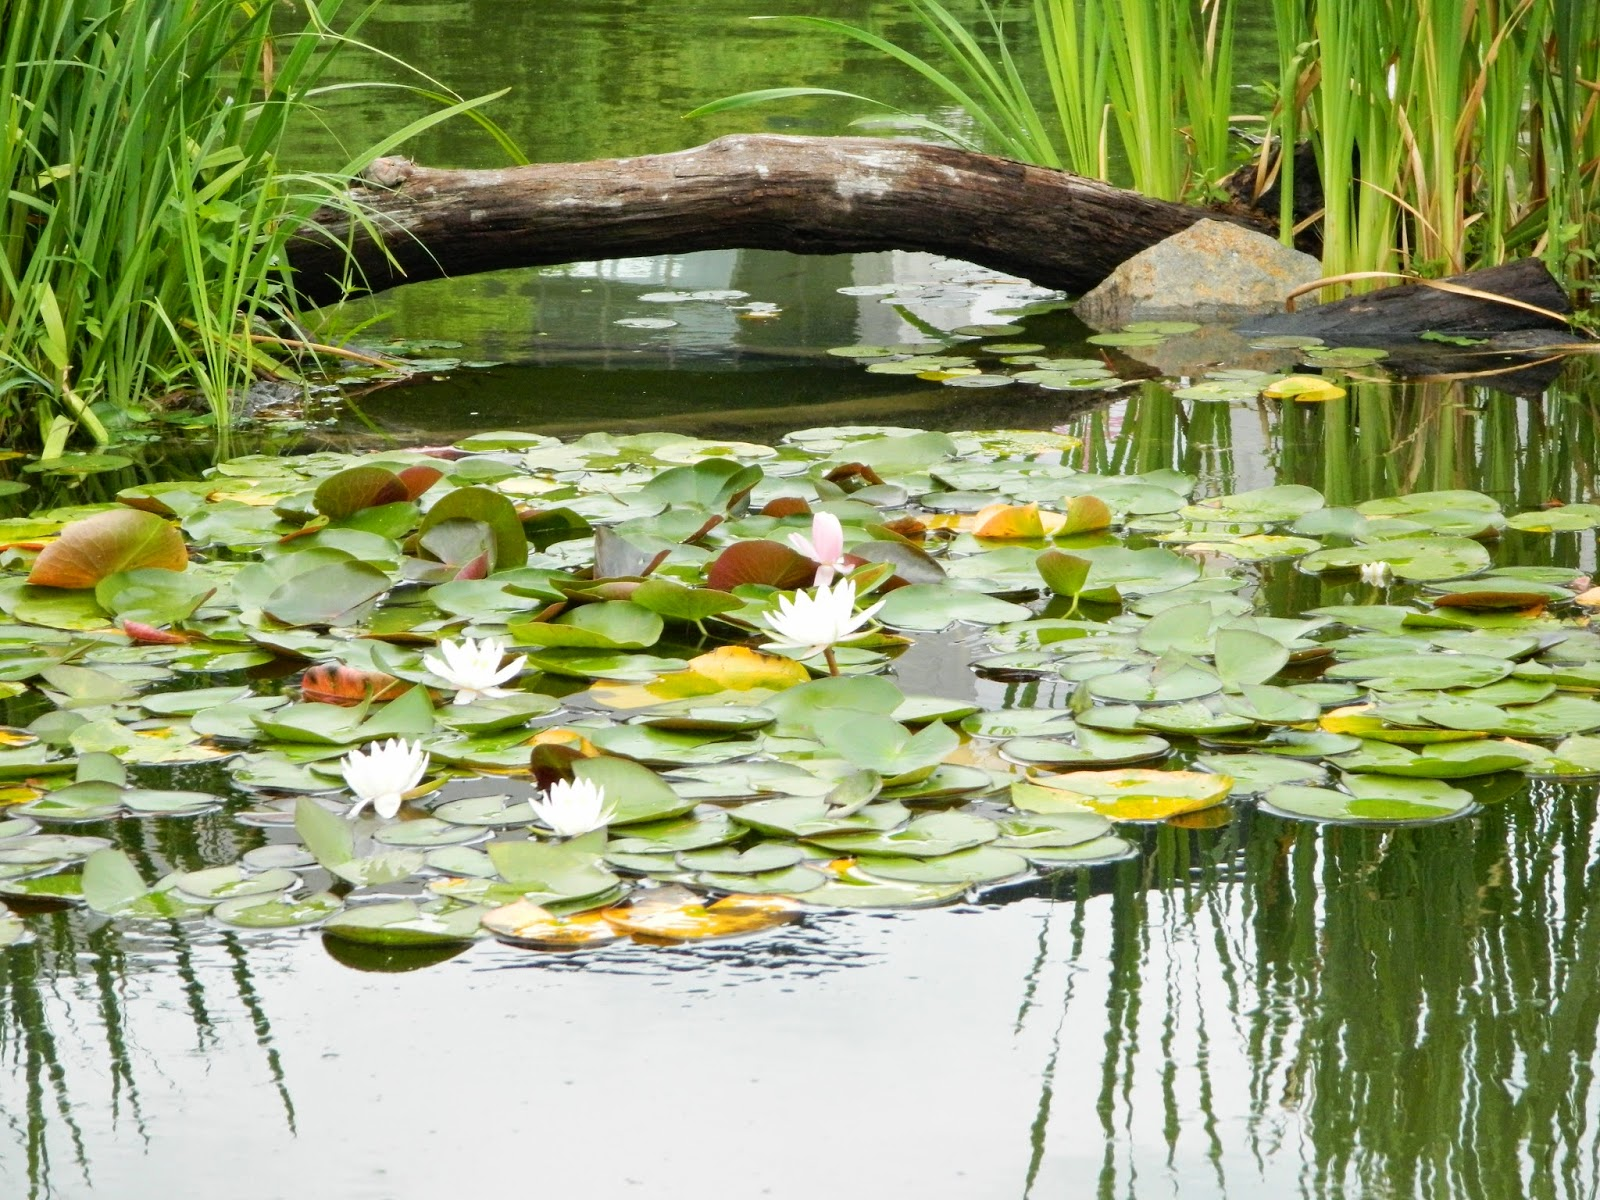 lilies and lotuses at the museum